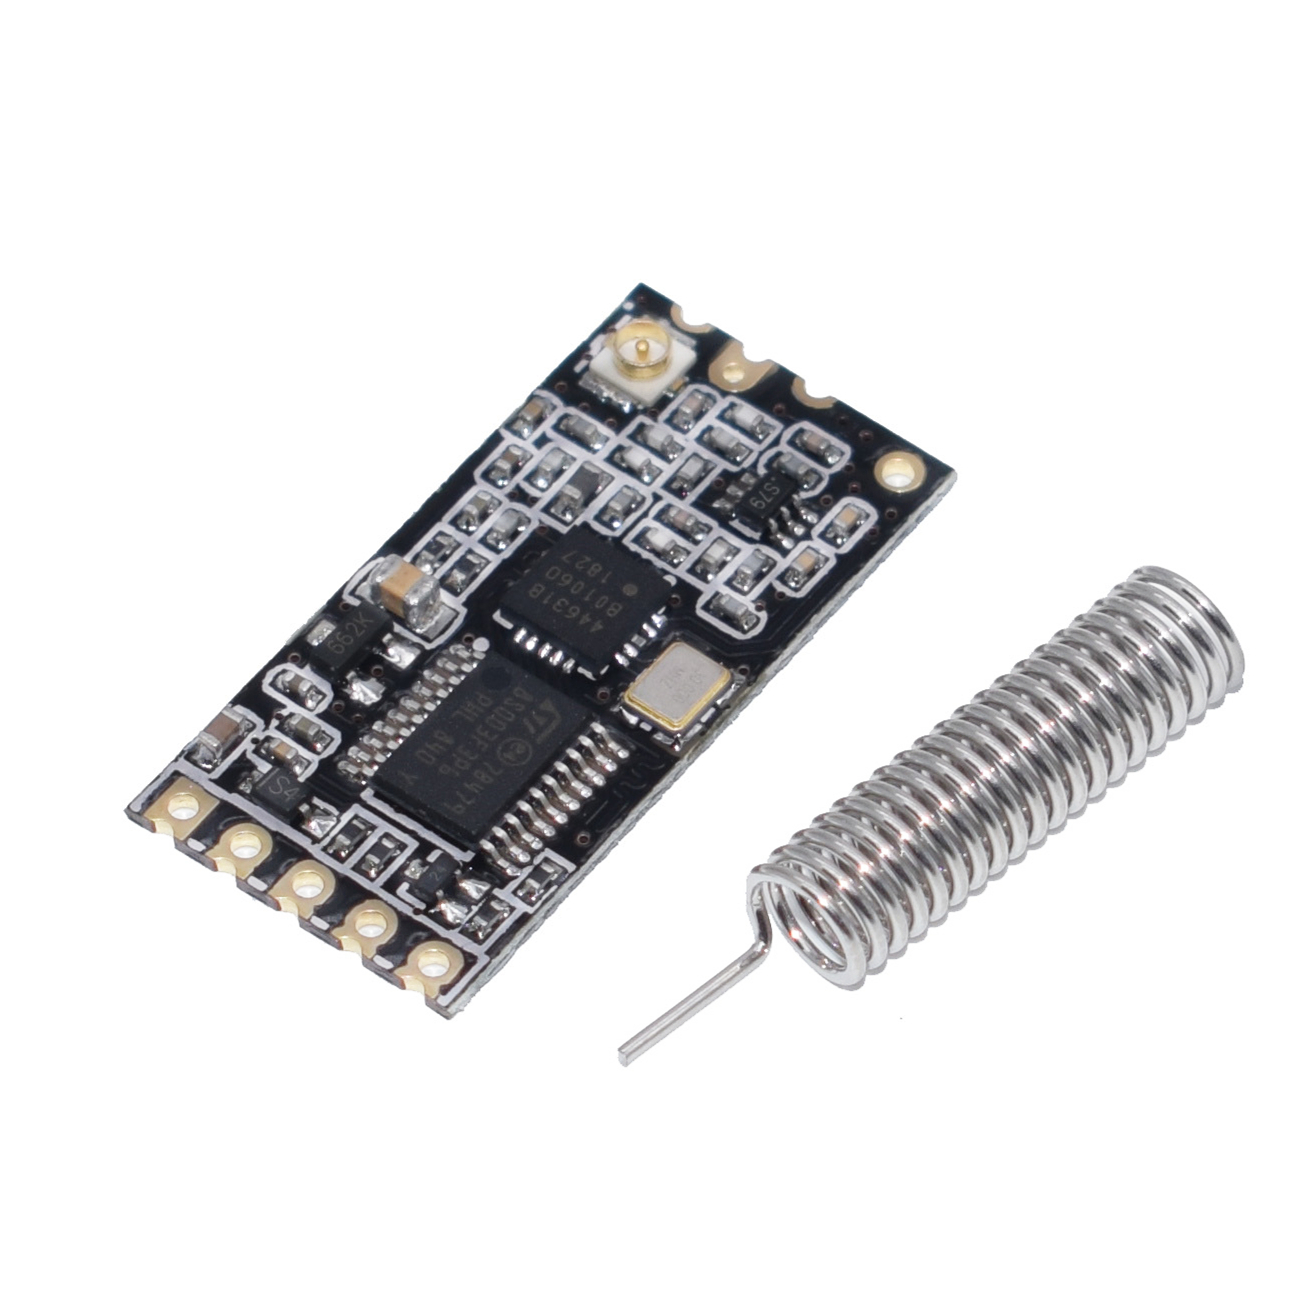 Free Shipping 50pcs HC 12 433Mhz SI4463 Wireless Serial Port Module 1000m Replace Bluetooth